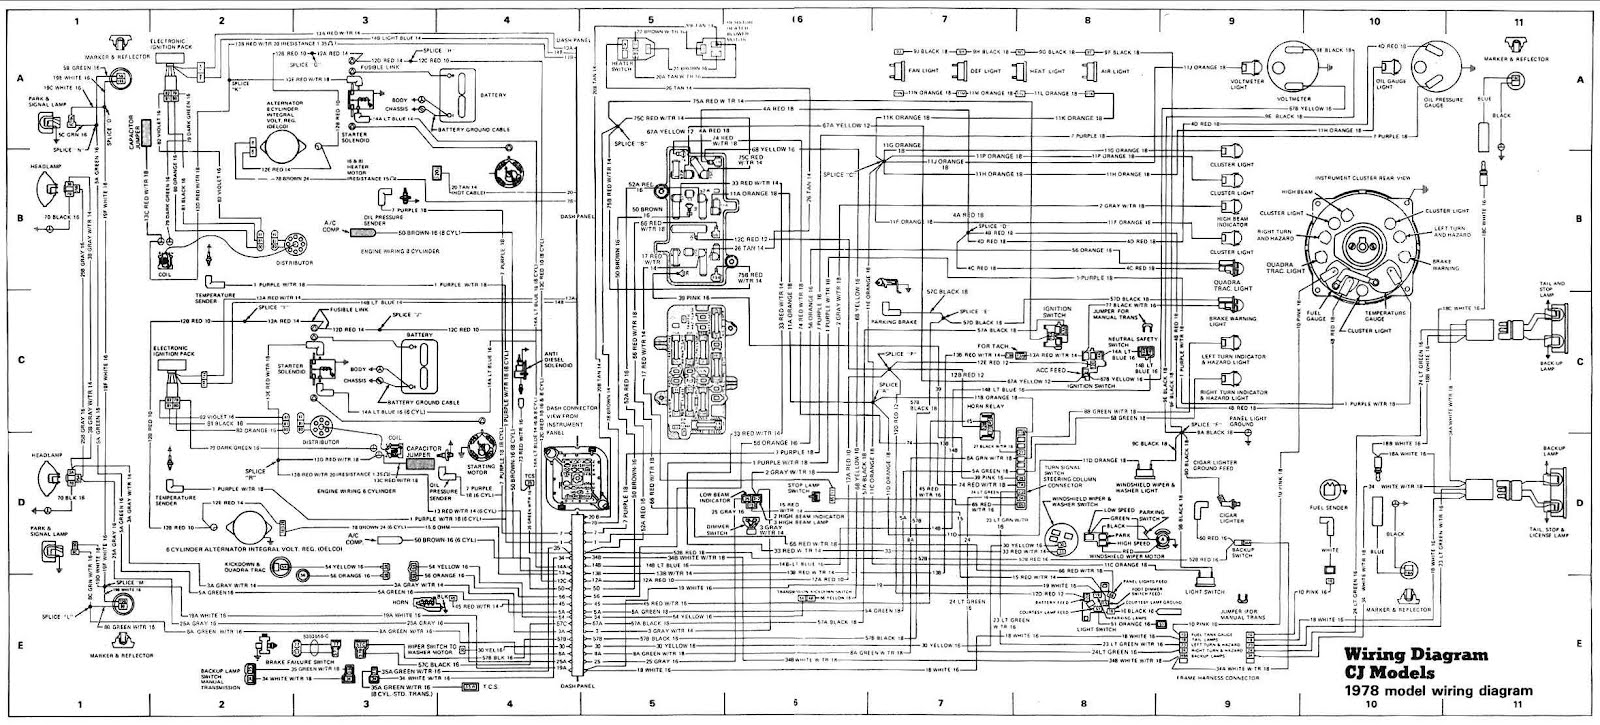 Stunning bmw e46 wiring harness diagram contemporary best image fantastic e46 bmw factory wiring diagrams contemporary the best asfbconference2016 Image collections